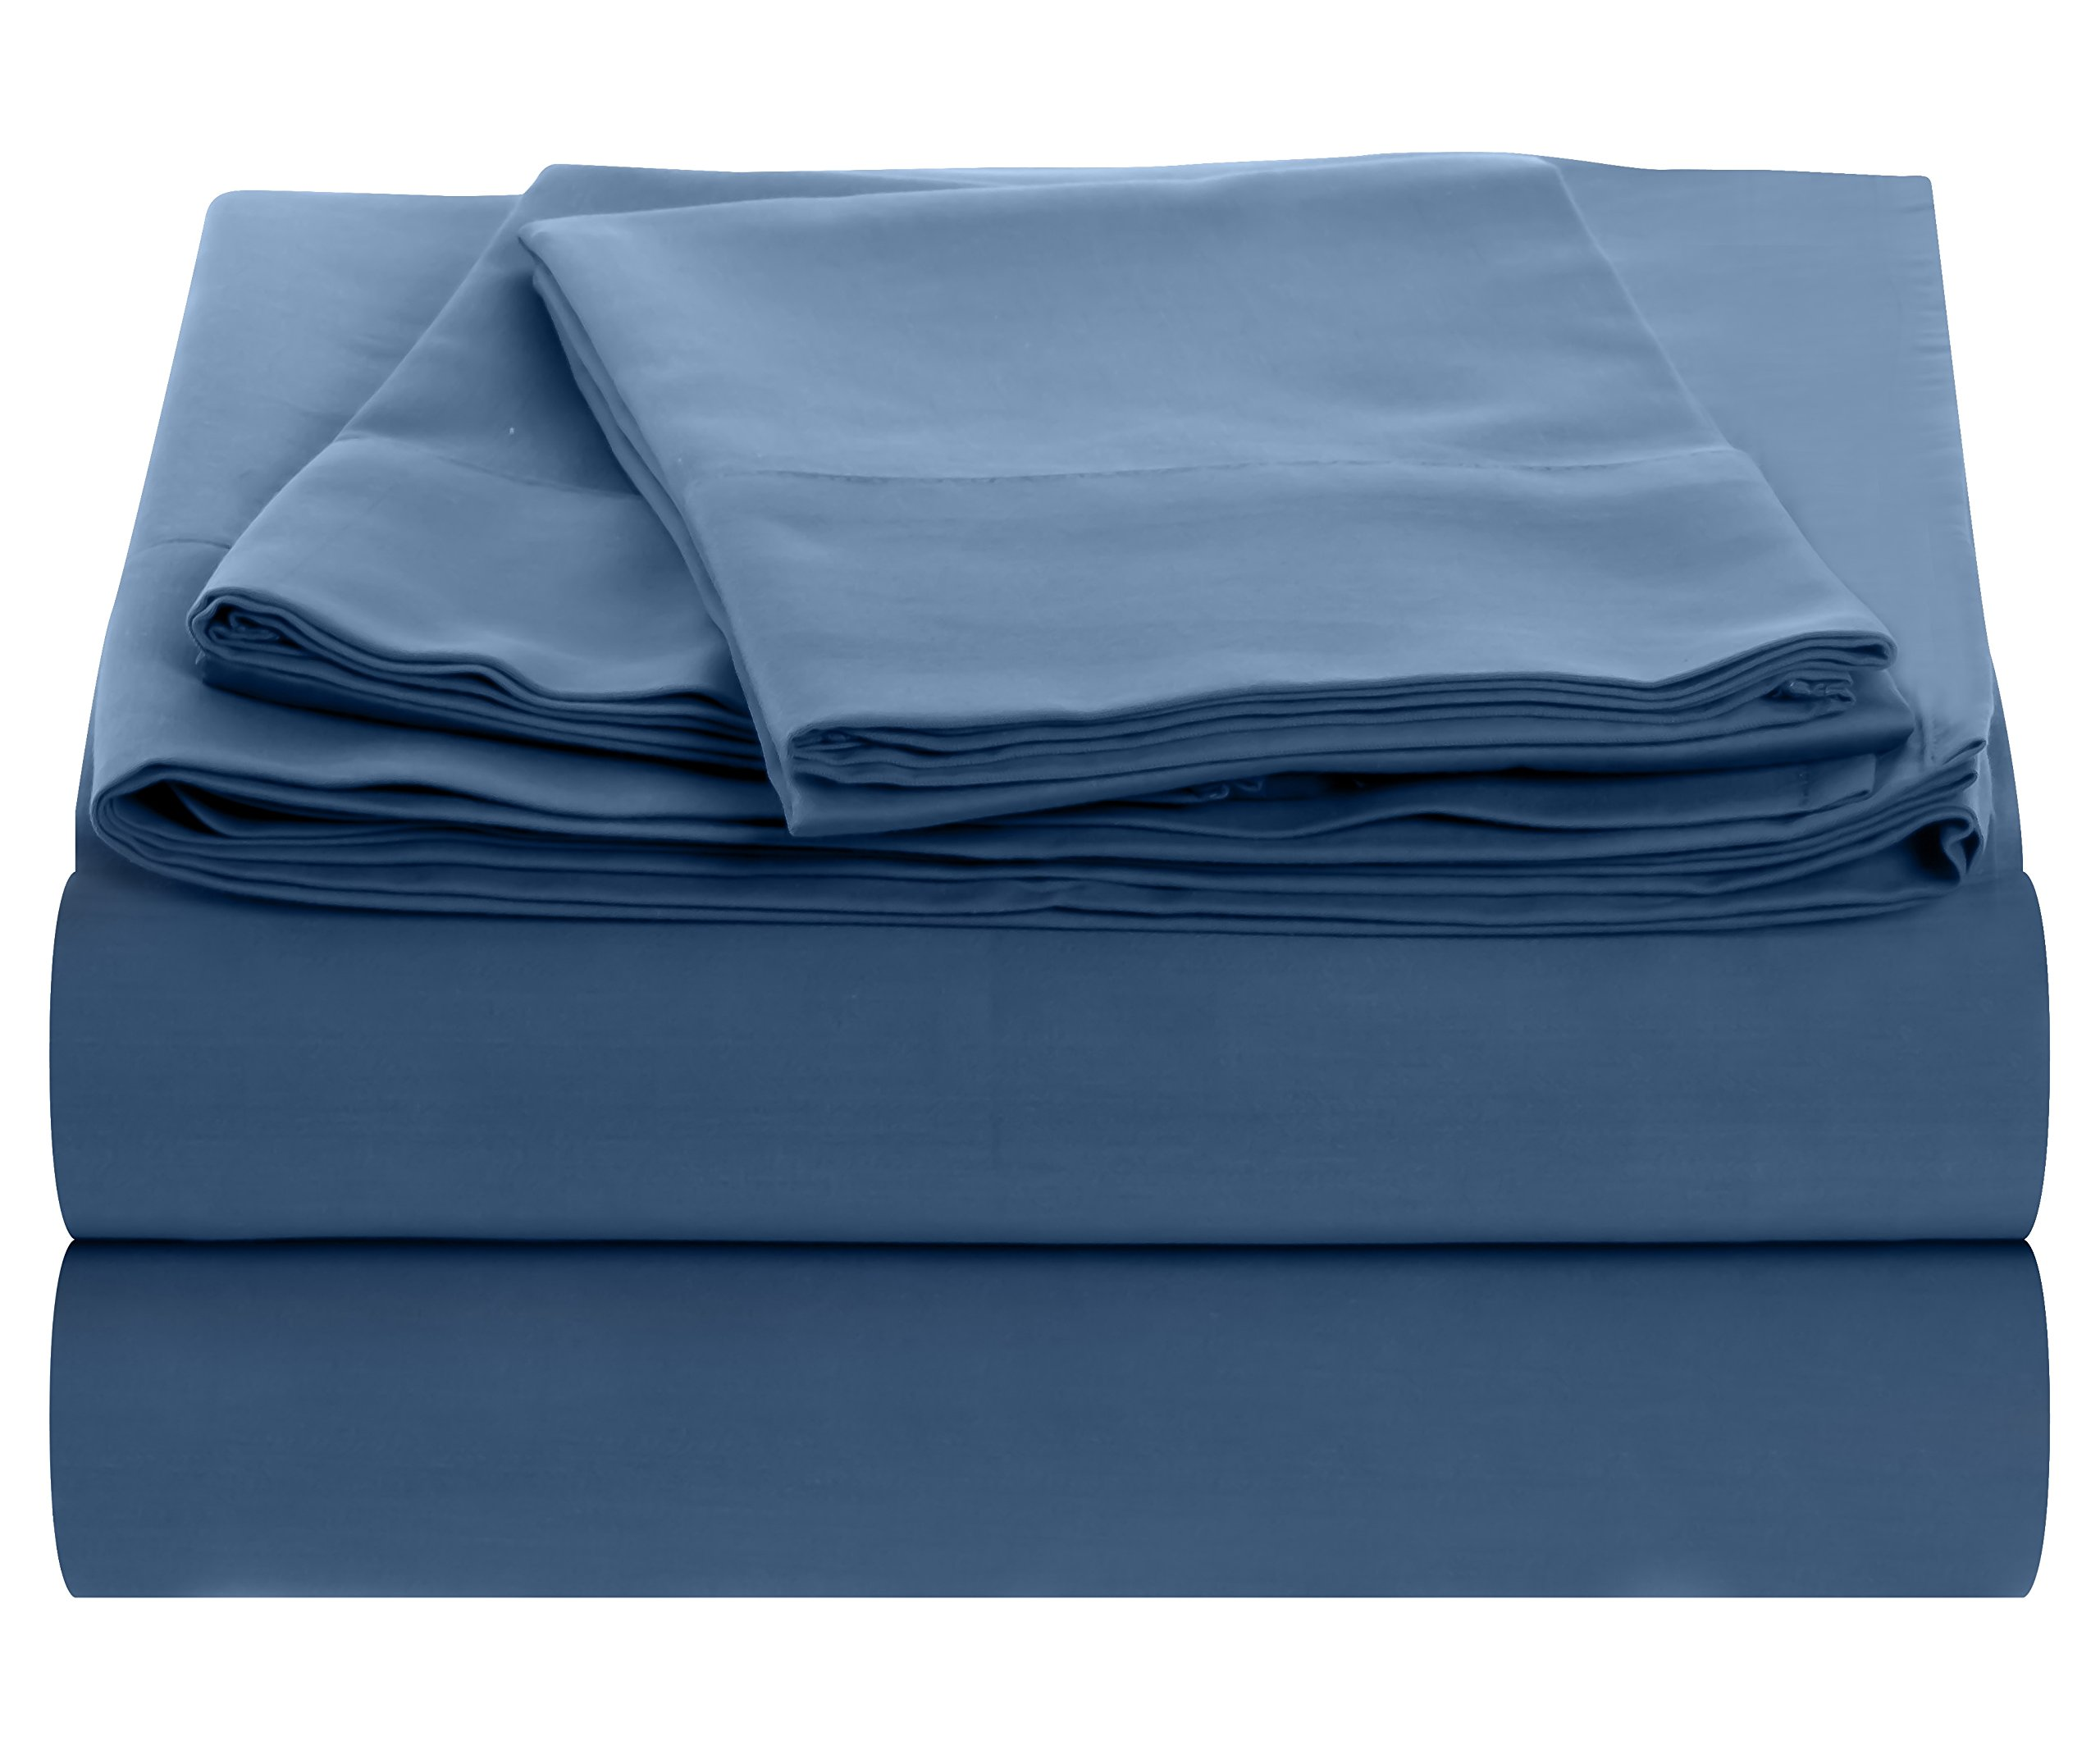 Outlast Temperature Regulating Hypoallergenic Sheet Set – 300 Thread Count, 40%, 60% Cotton Sateen Weave, Midnight Blue, Queen